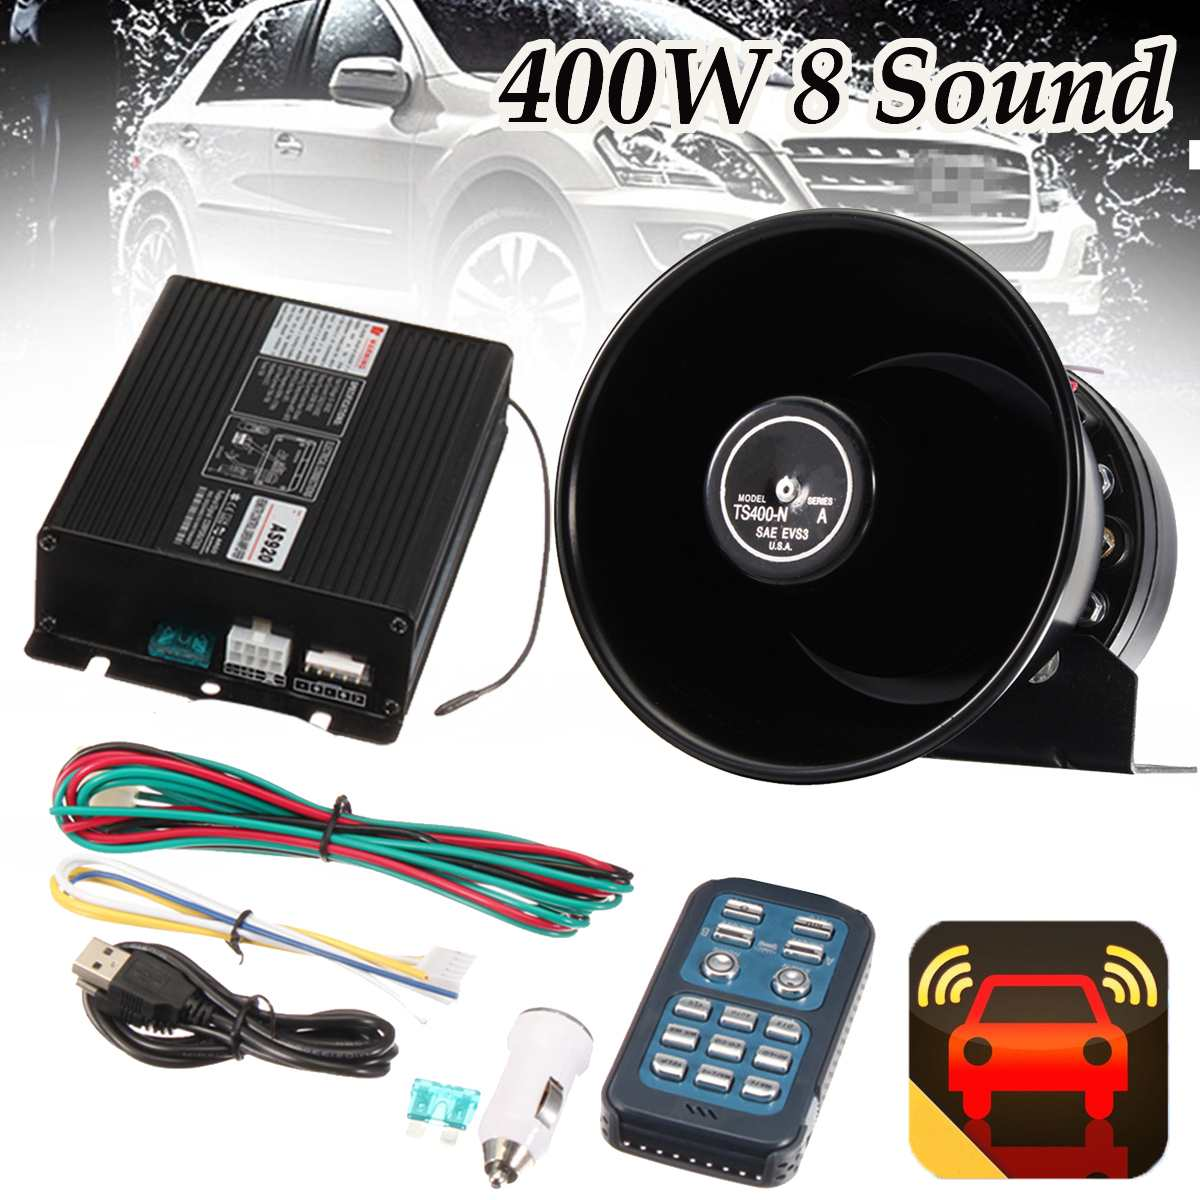 1Set 12V DC 400W Durable 8 Sound Loud Car Warning Alarm Polices Siren Horn PA Speaker Remote